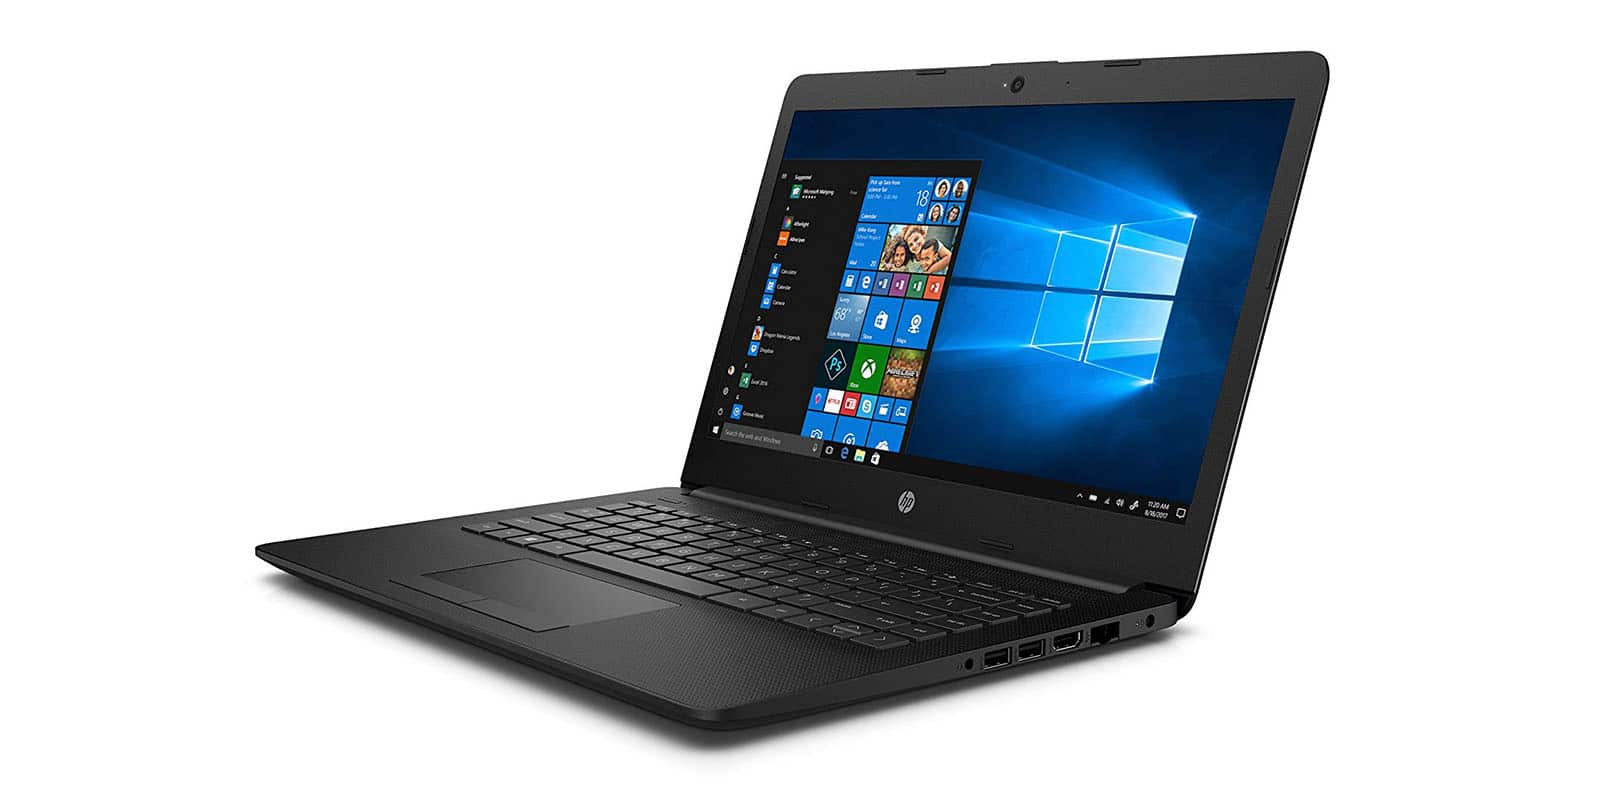 hp 14-cm0010nr 14-inch laptop featured